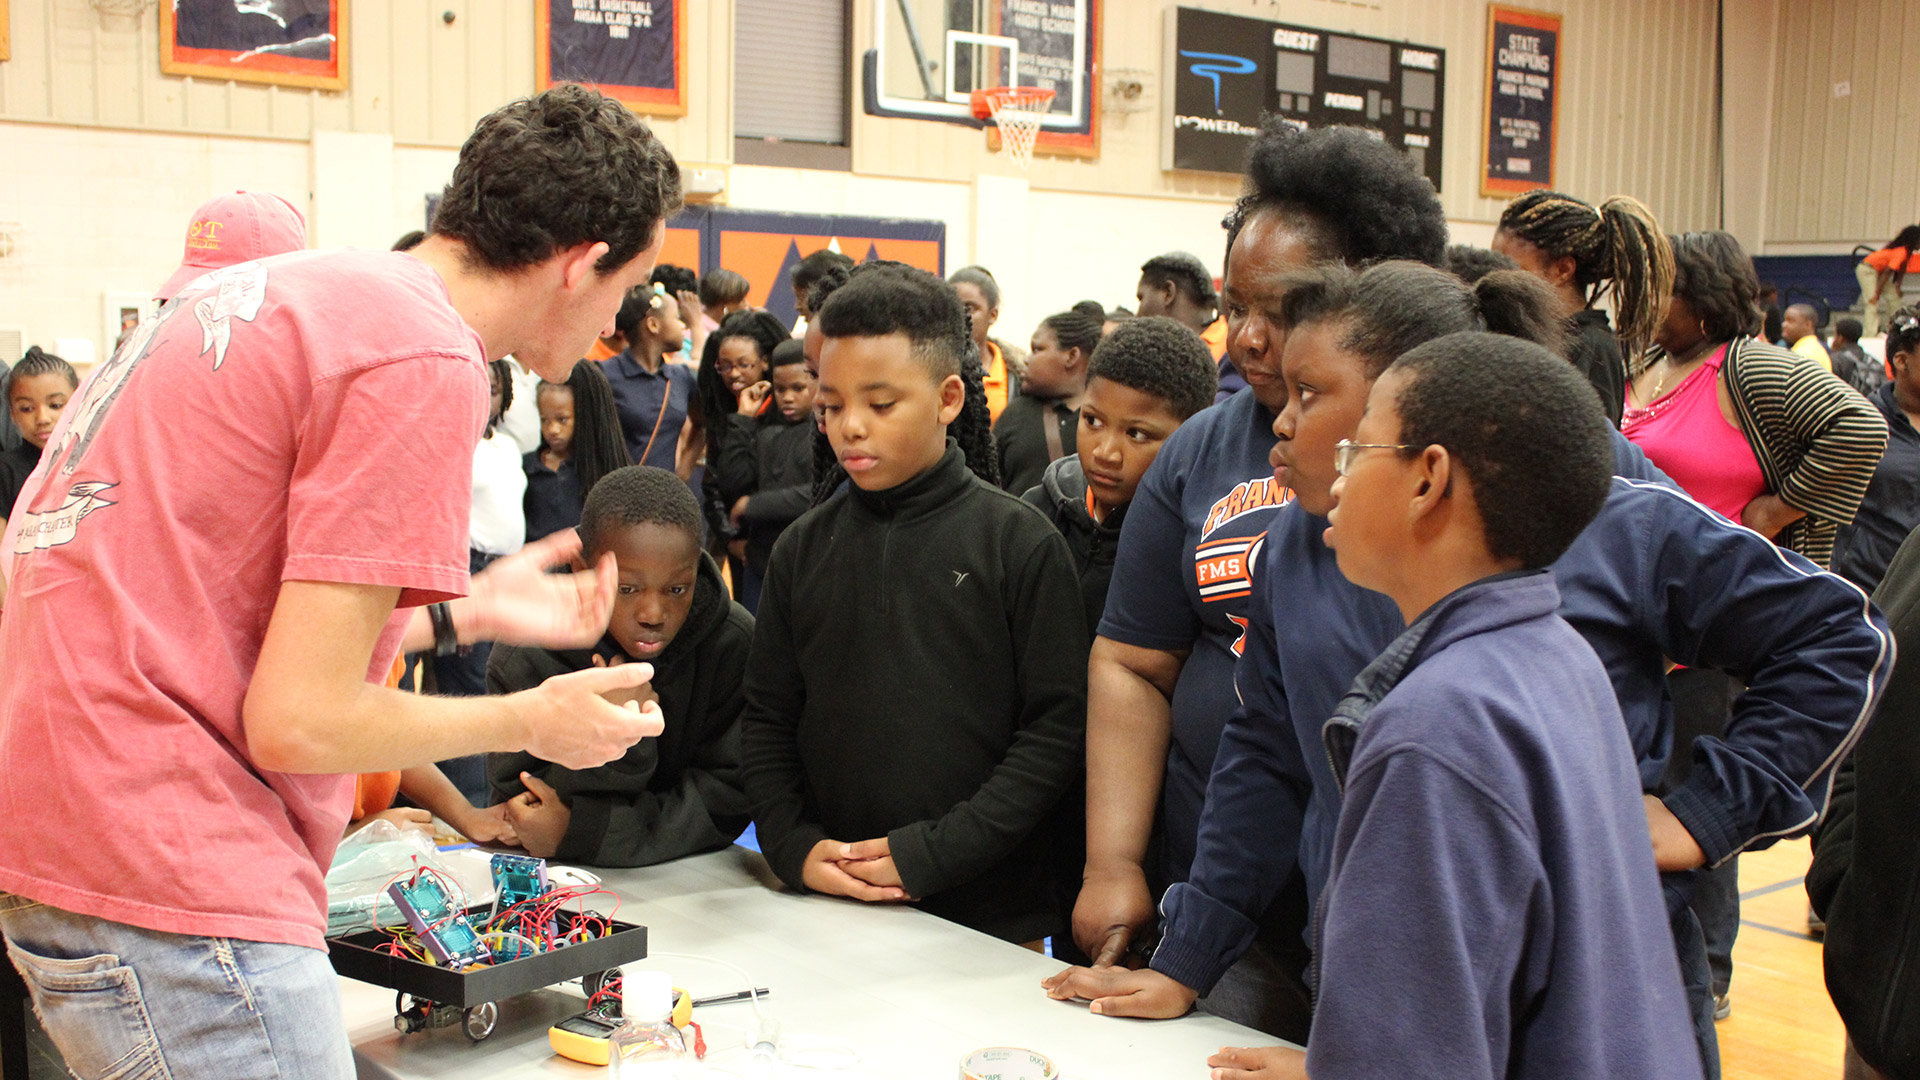 Story Image - A student showing off a fun engineering project to children in a gym